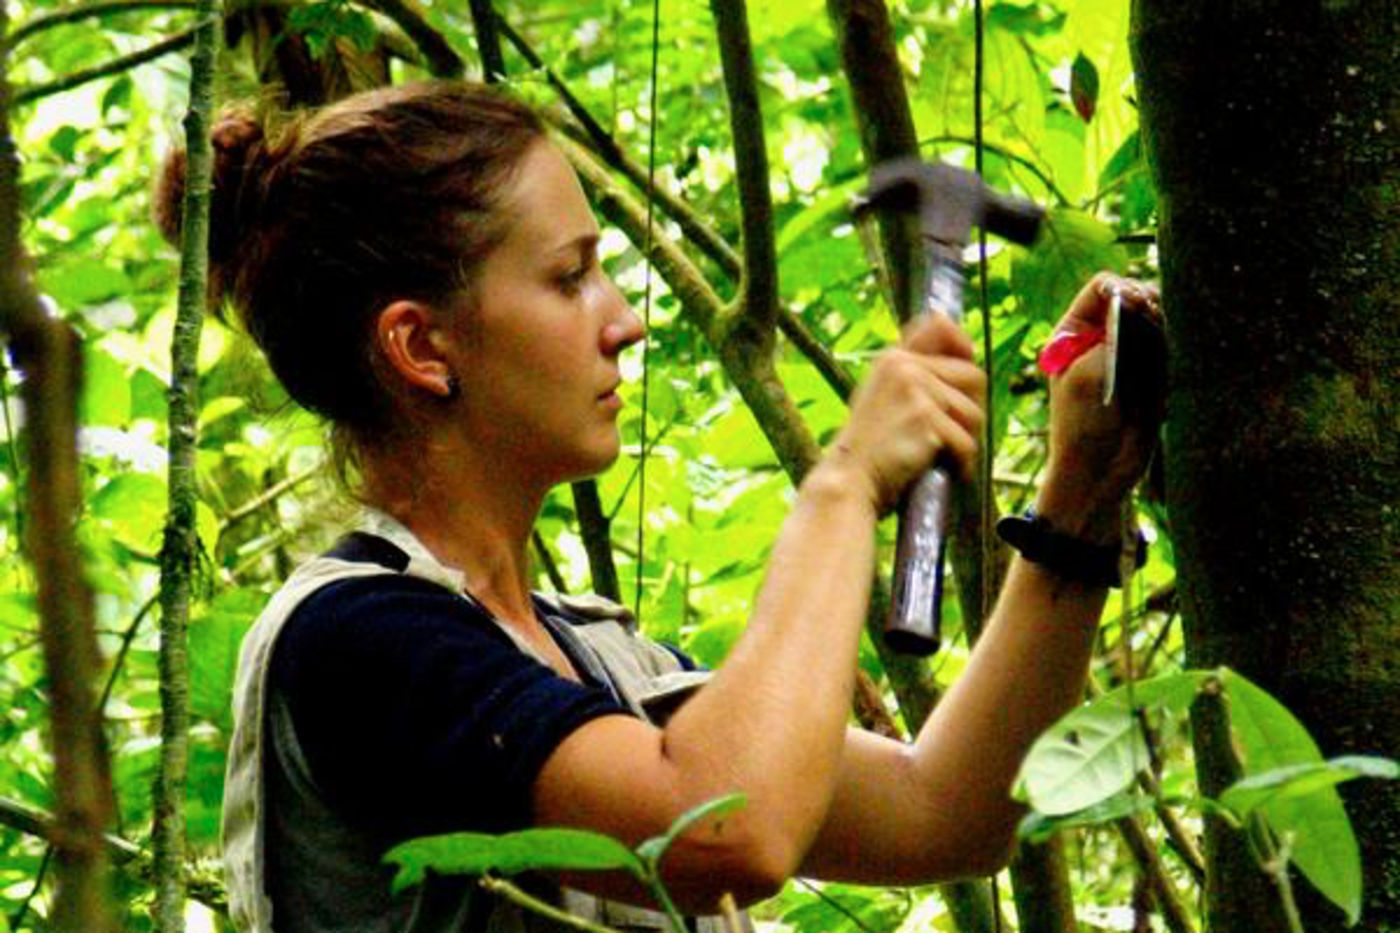 A woman in a jungle hammering something onto a tree.